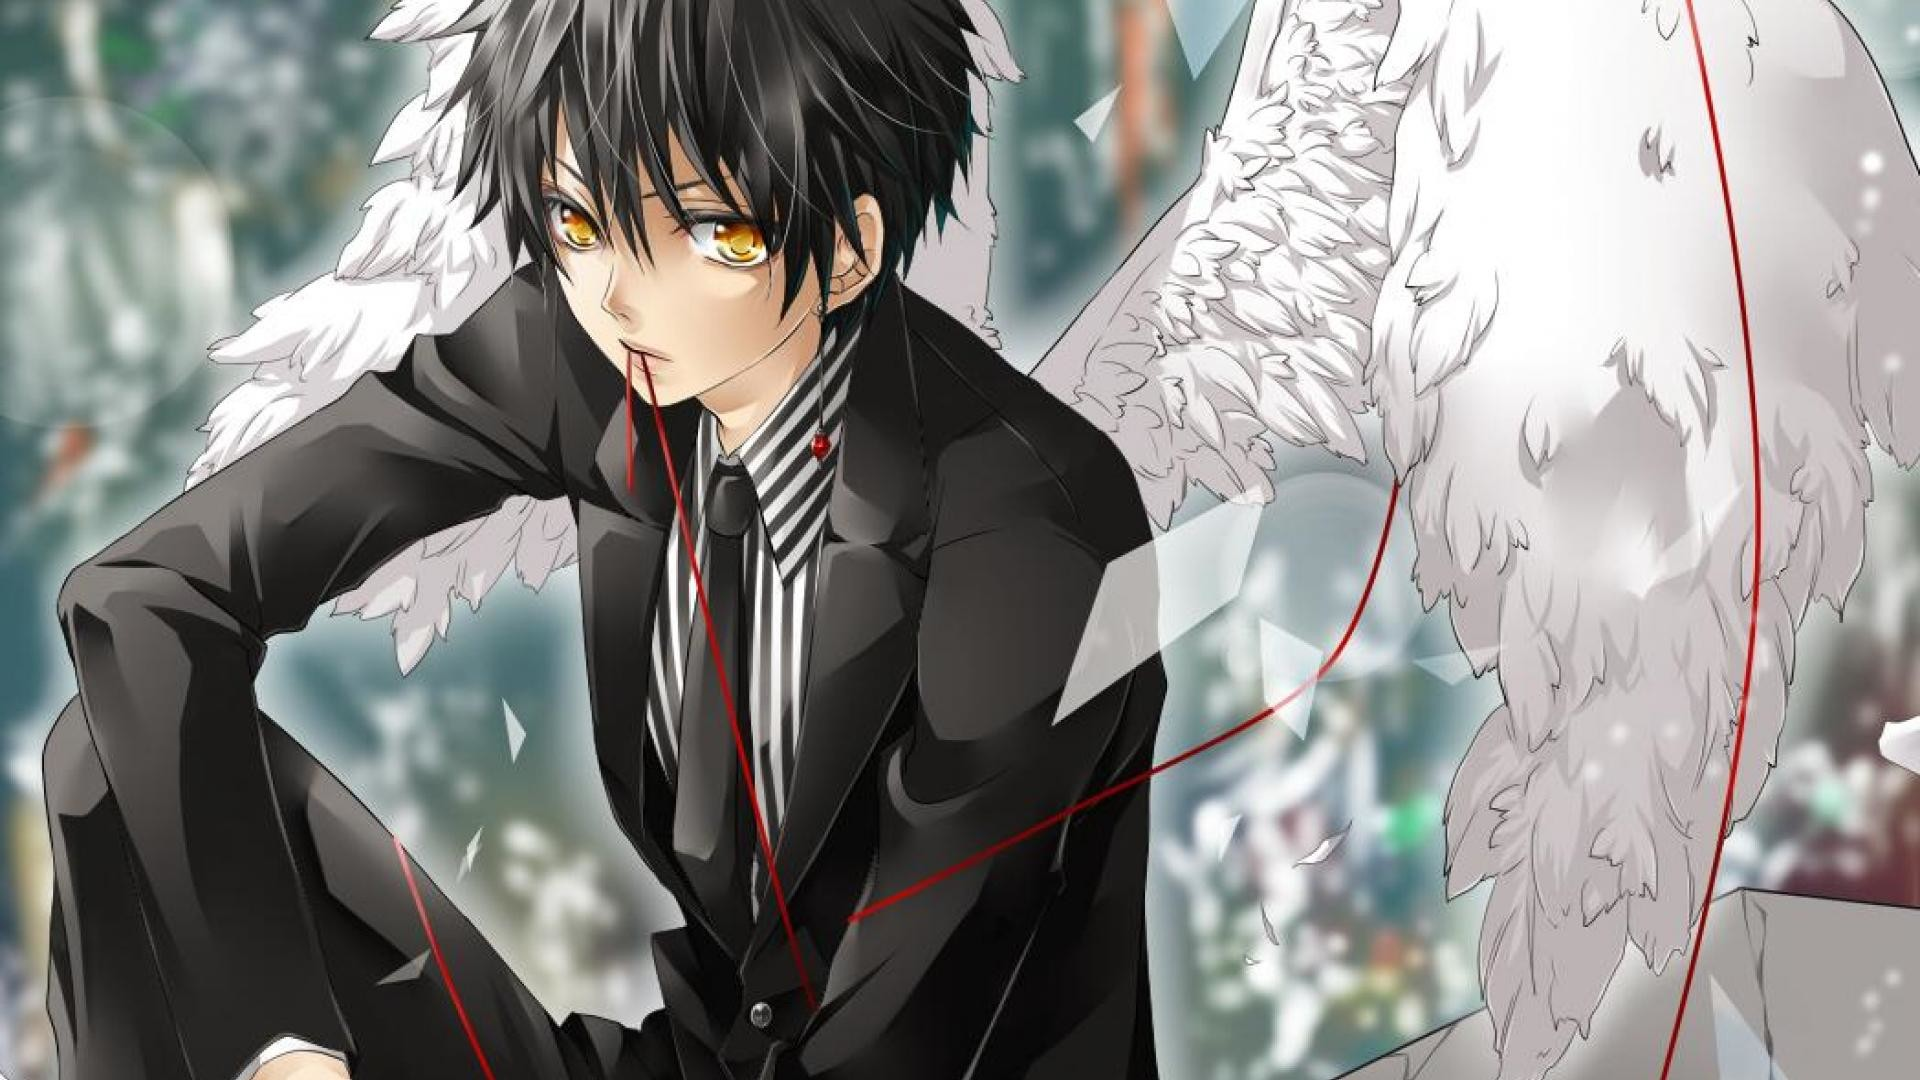 Anime Guy Wallpaper Hd 61 Images